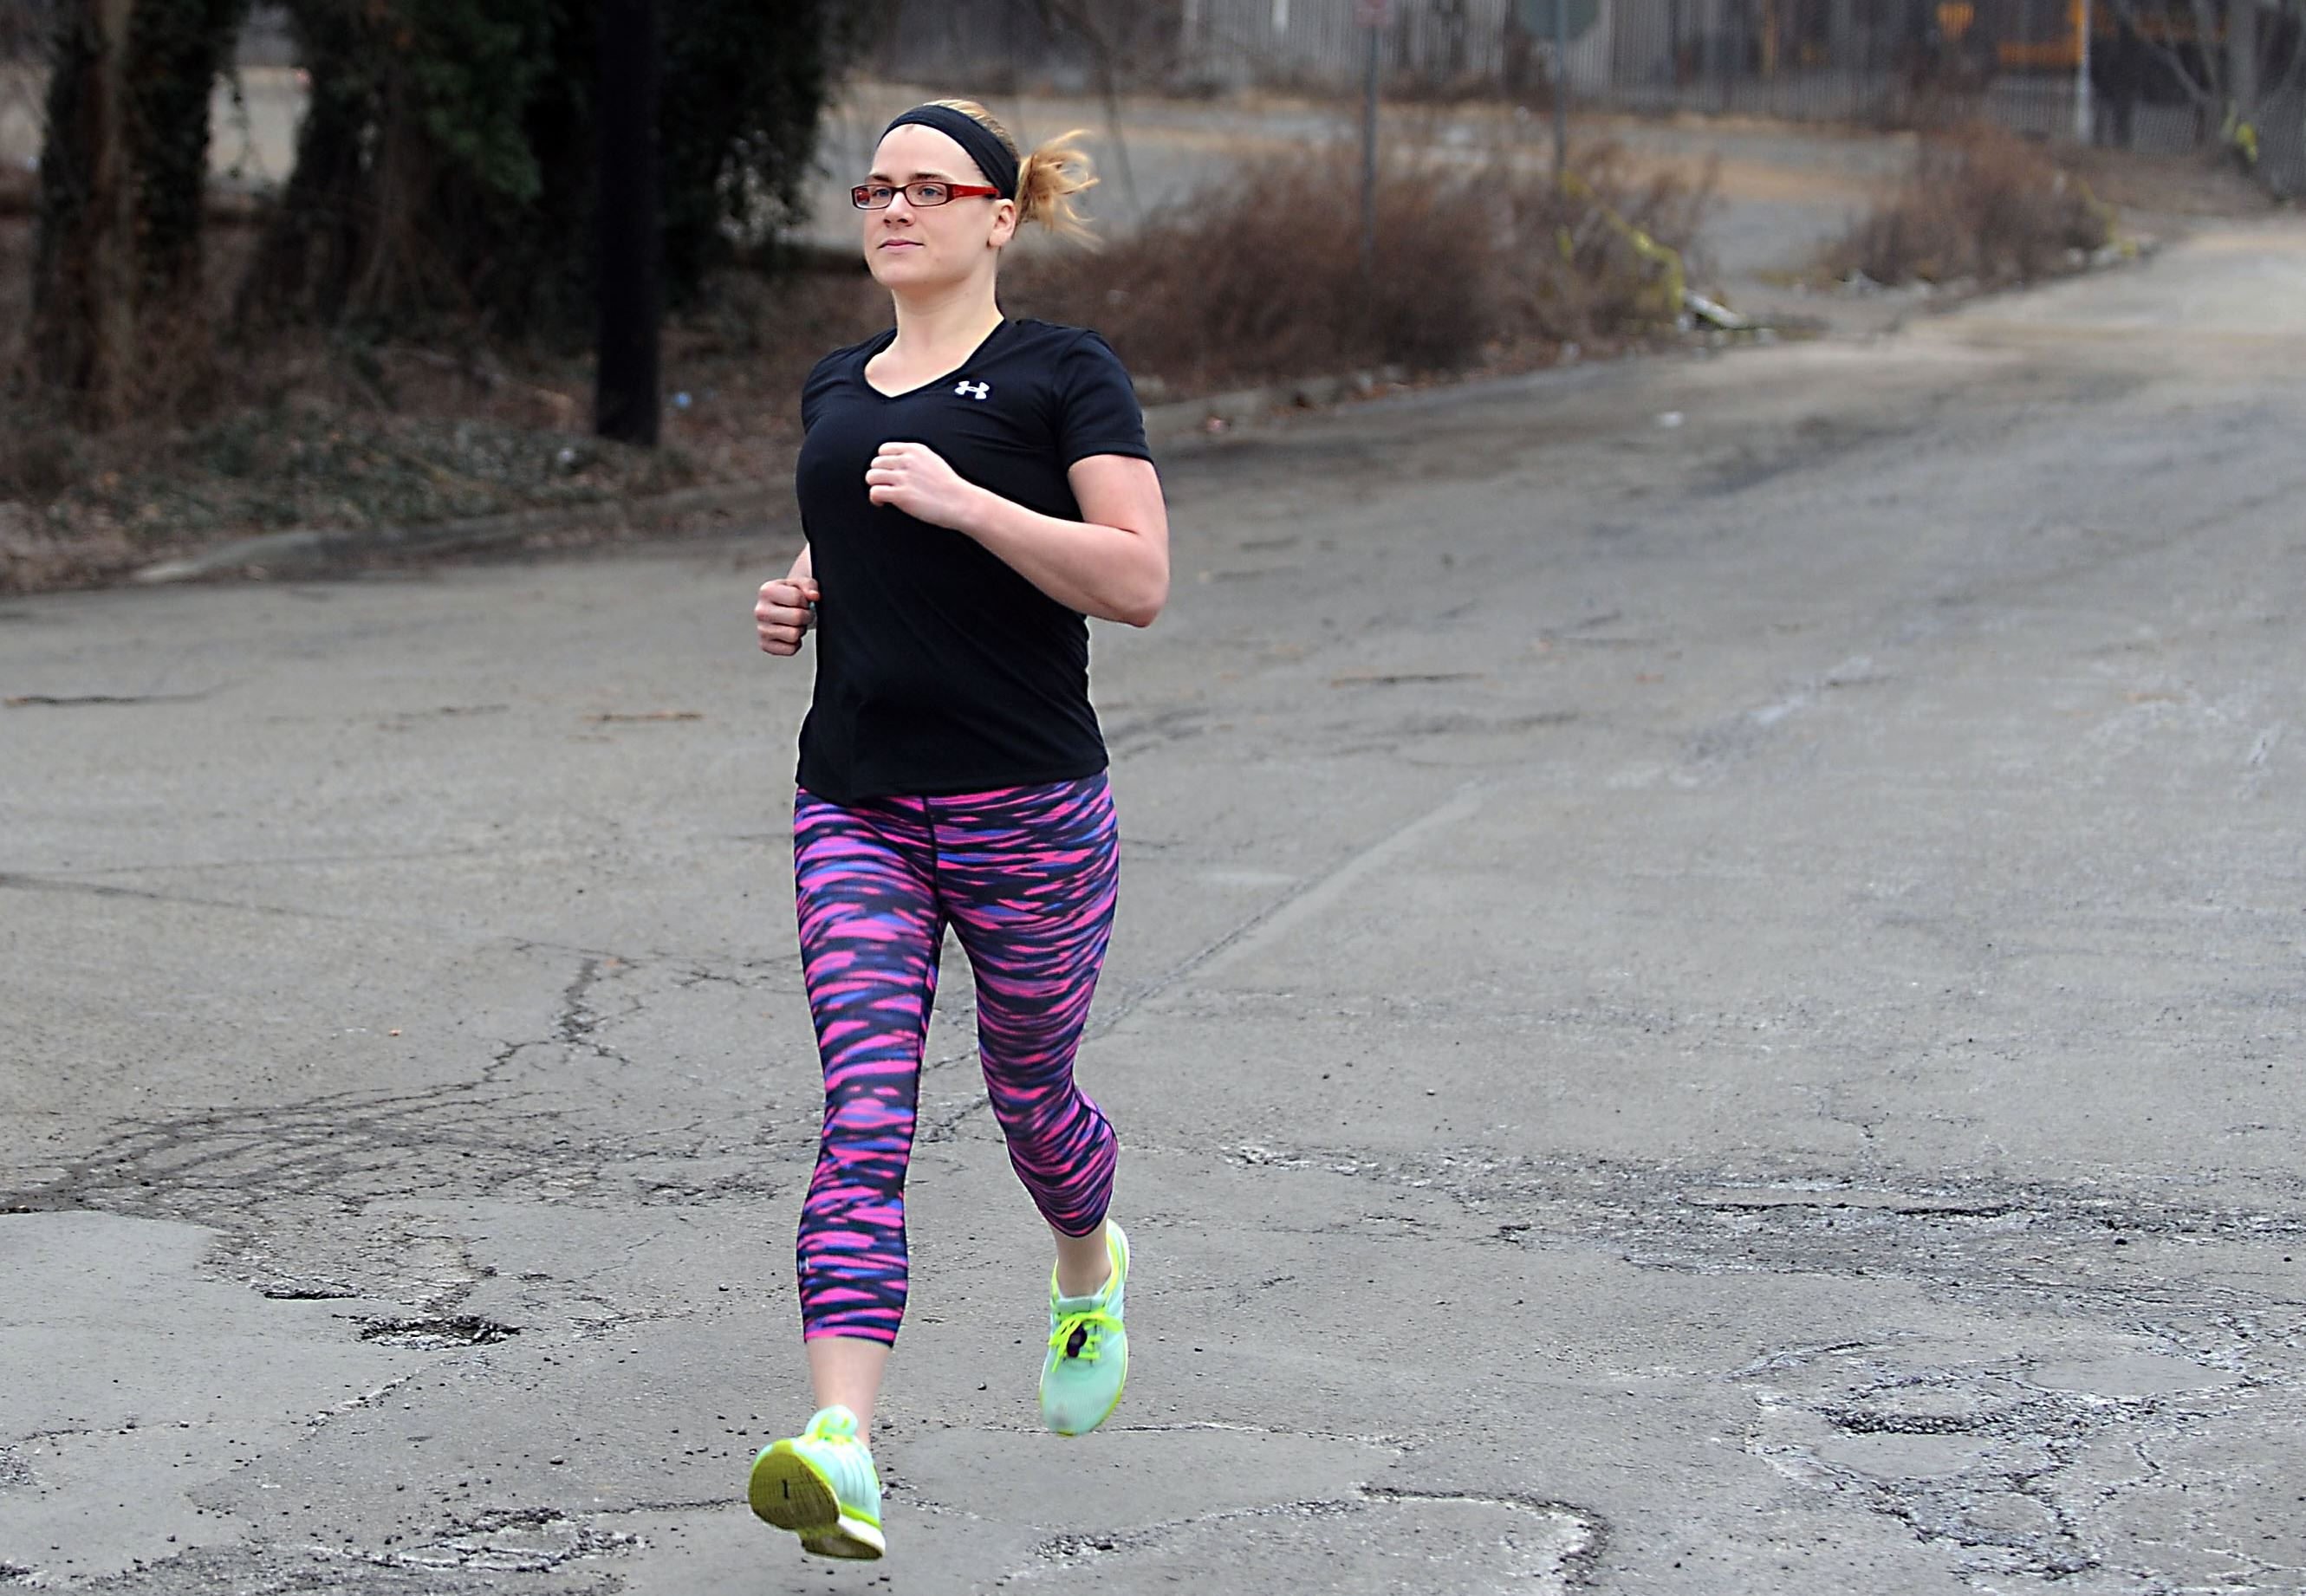 After family members' suicides, woman heals her emotional wounds through running